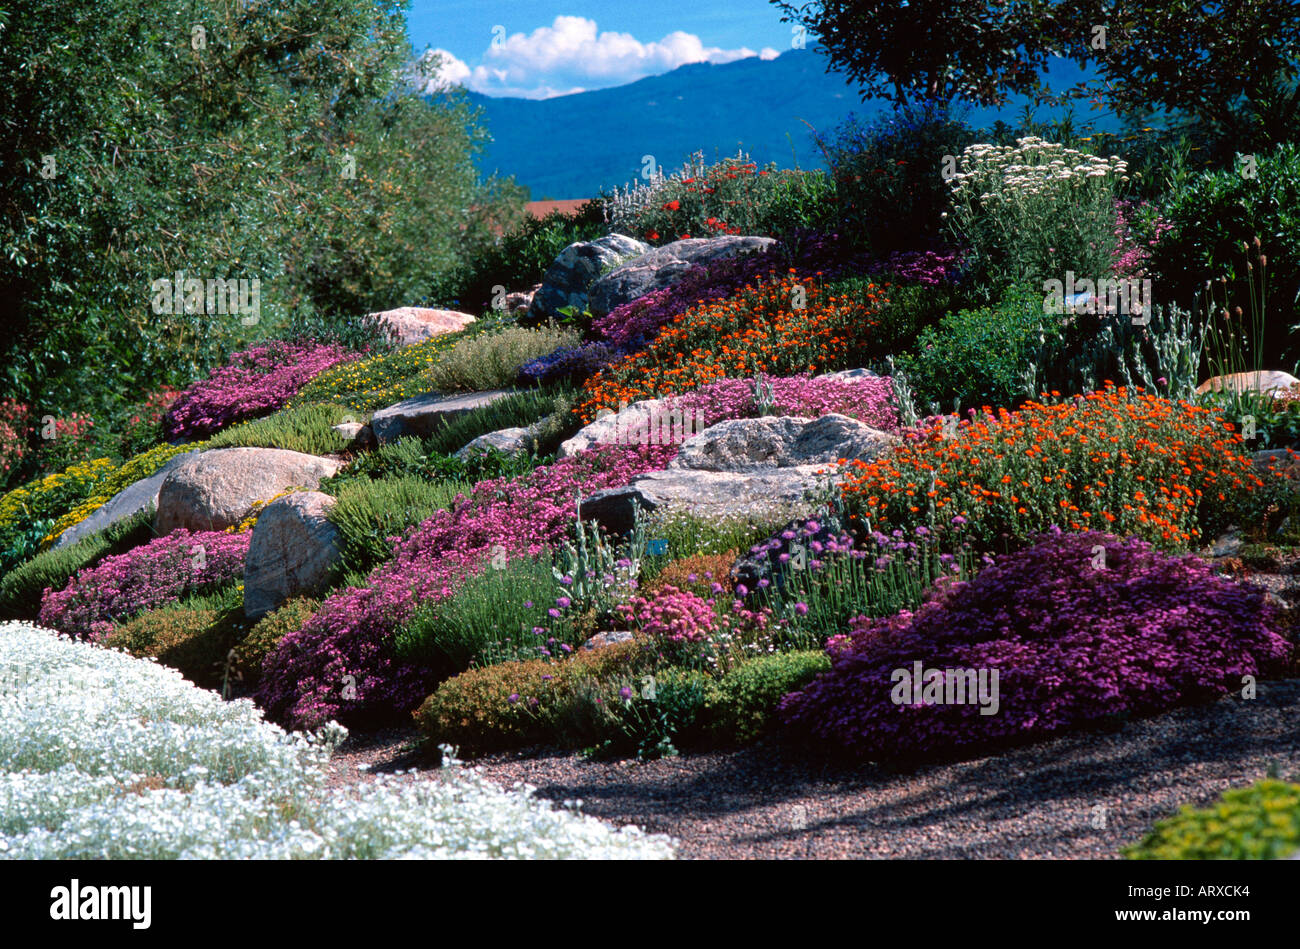 Alpine Rock Garden Yampa River Botanic Park Steamboat Springs Stock Photo Royalty Free Image